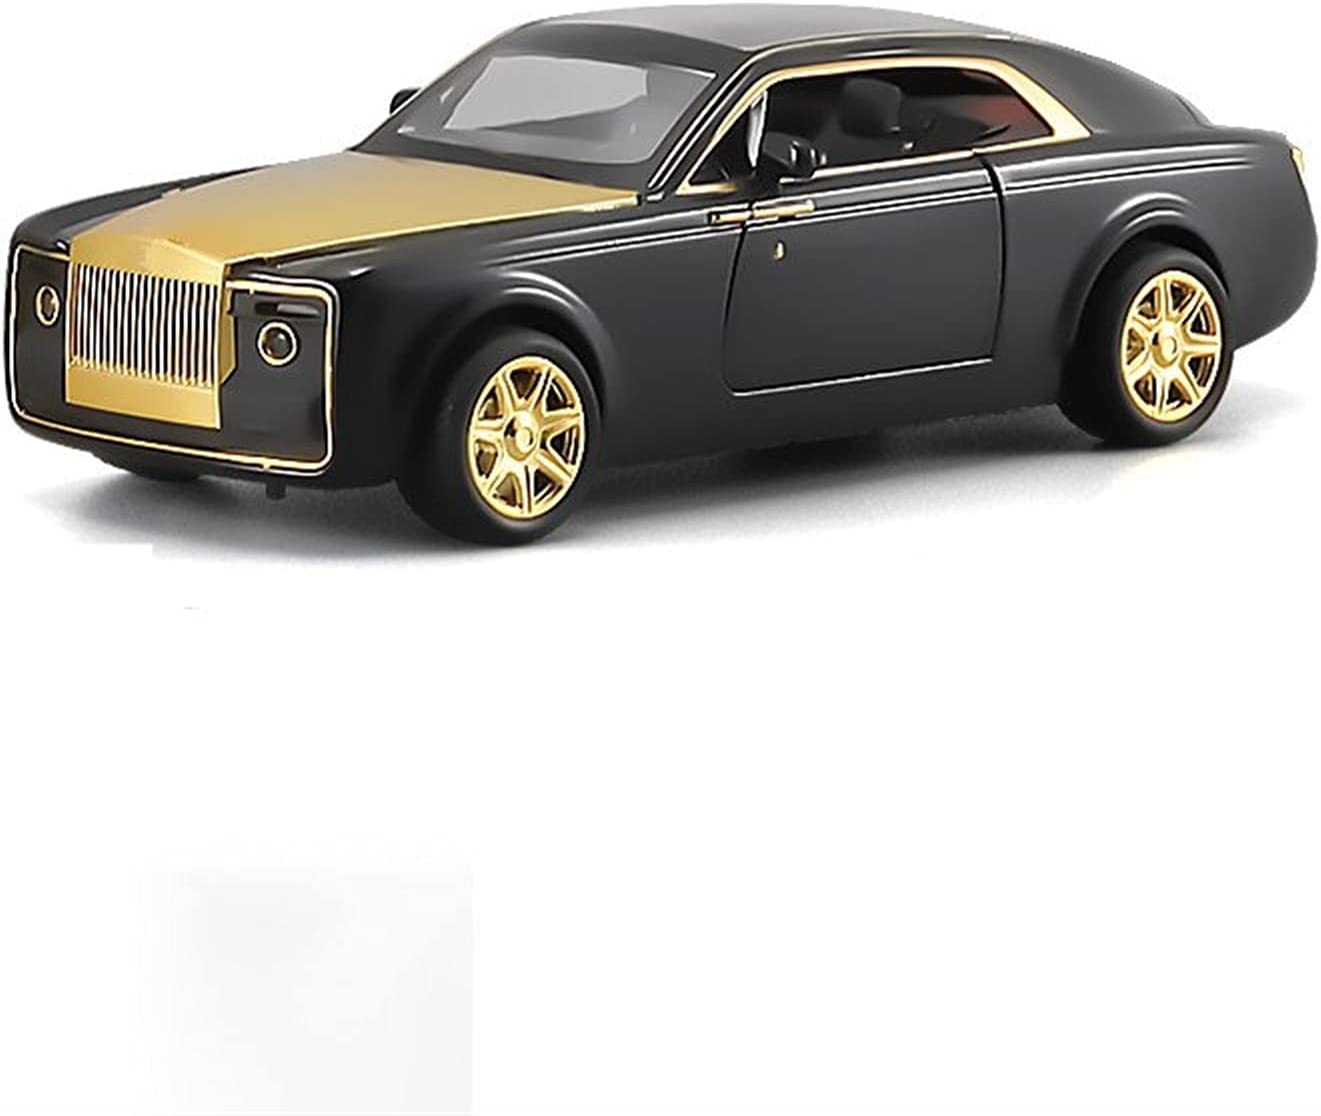 JKSM Diecast Model Car Charlotte Mall 1:24 Opening large release sale Rolls-Royce C Alloy Sweptail for